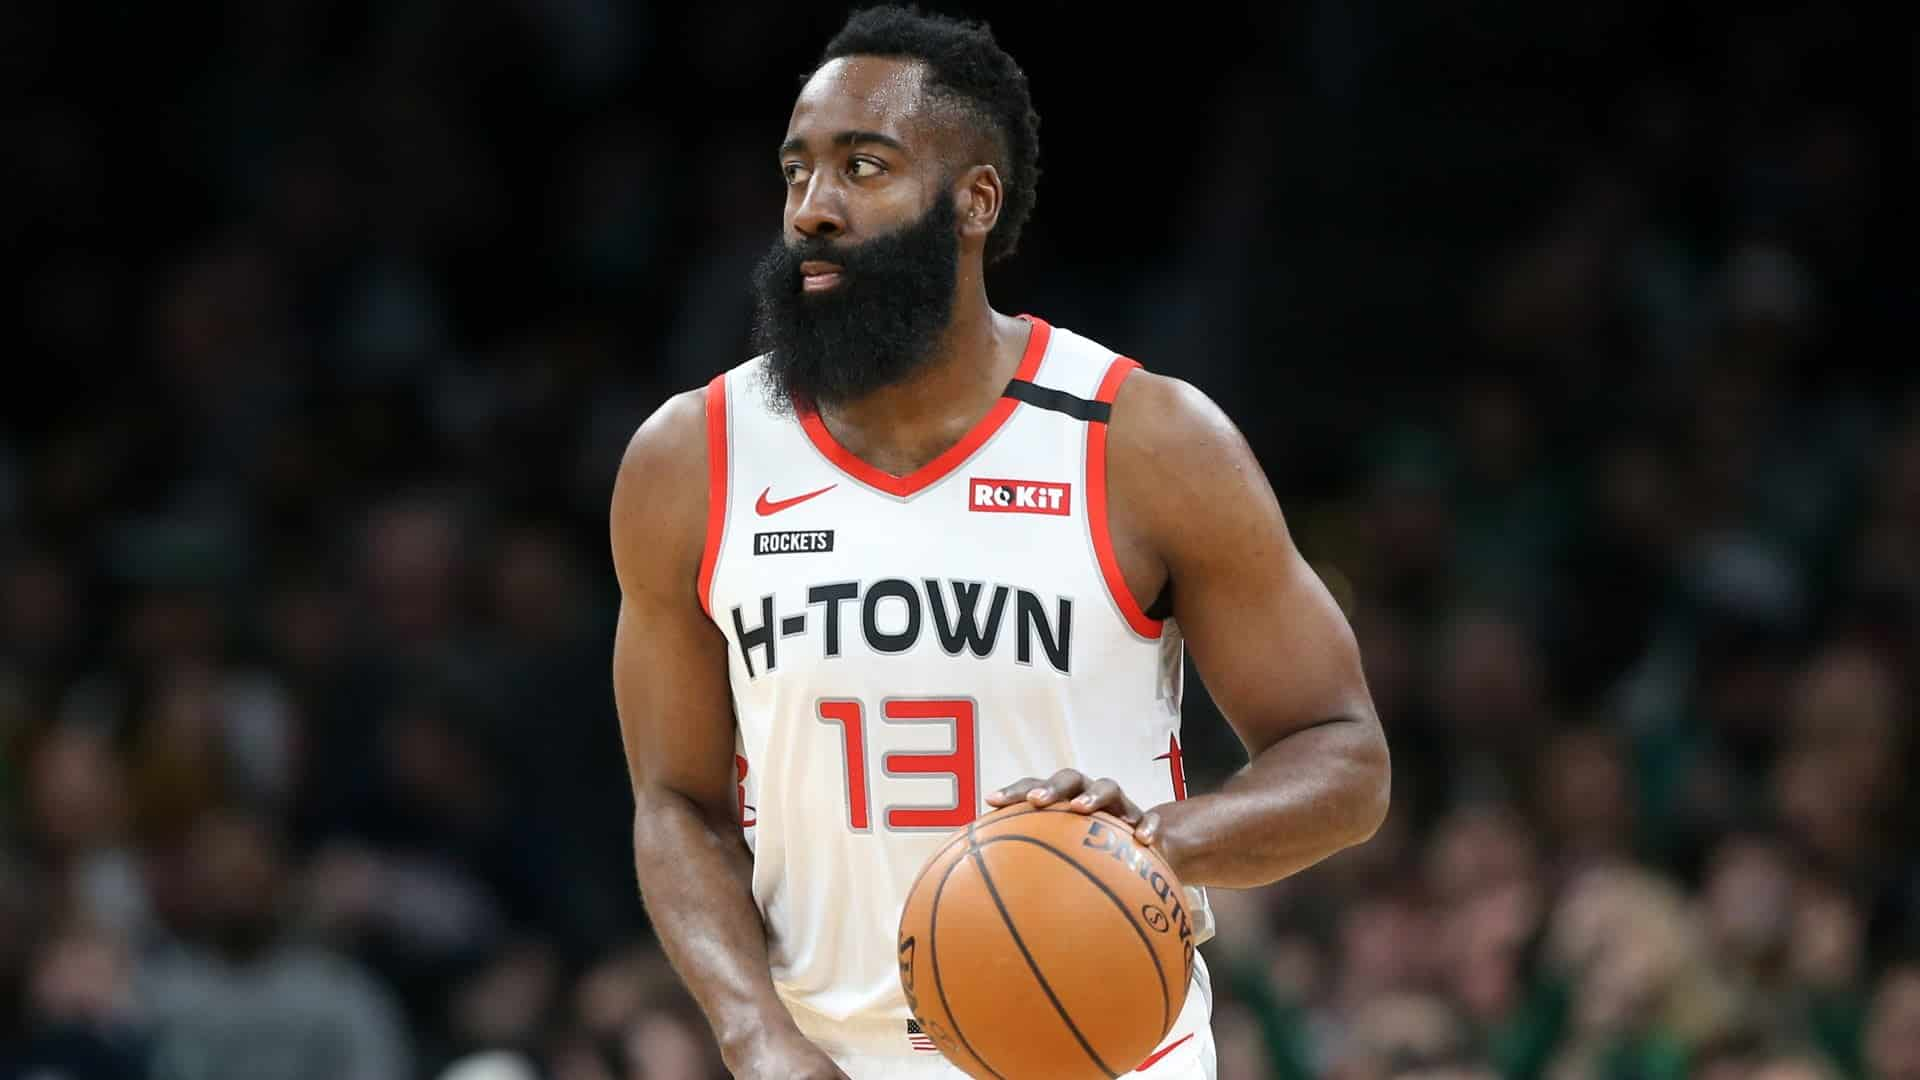 James Harden regresa a la practica de los Rockets en